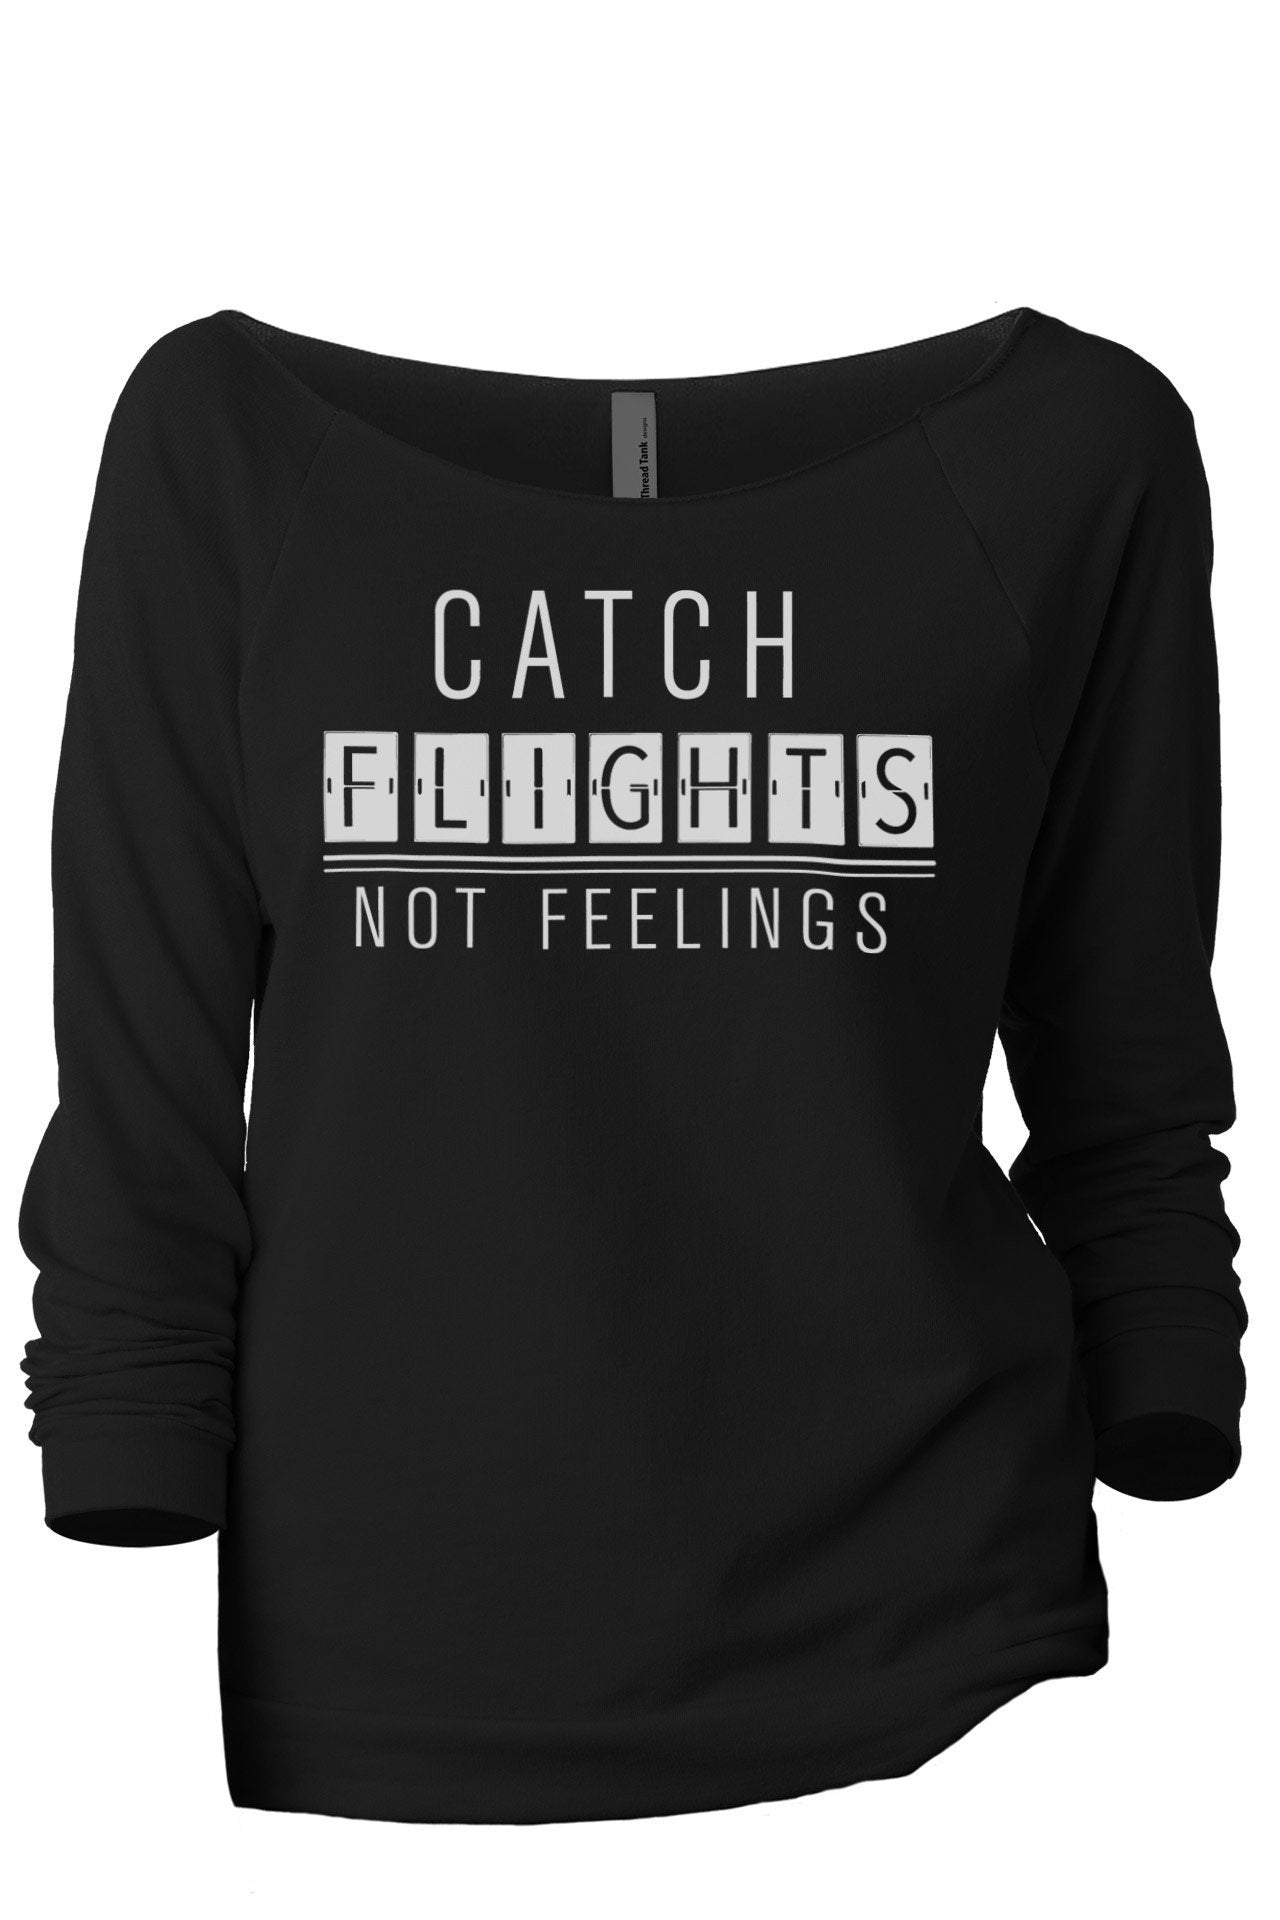 Catch Flights Not Feelings Women's Graphic Printed Lightweight Slouchy 3/4 Sleeves Sweatshirt Sport Grey